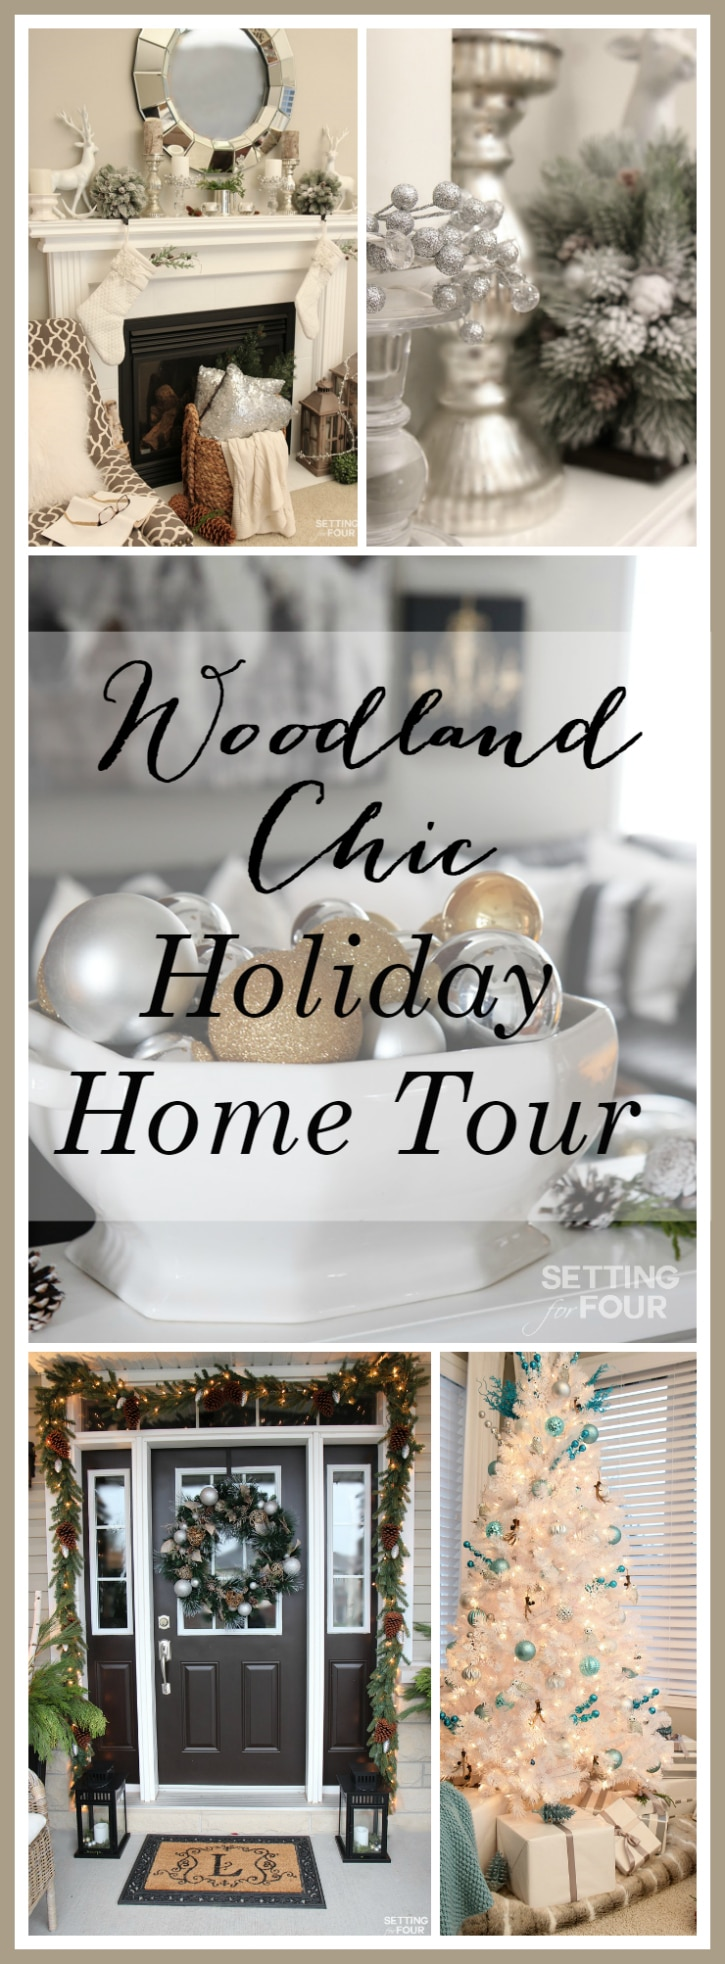 See my Woodland Chic Holiday Home Tour full of tons of Christmas decor ideas! www.settingforfour.com